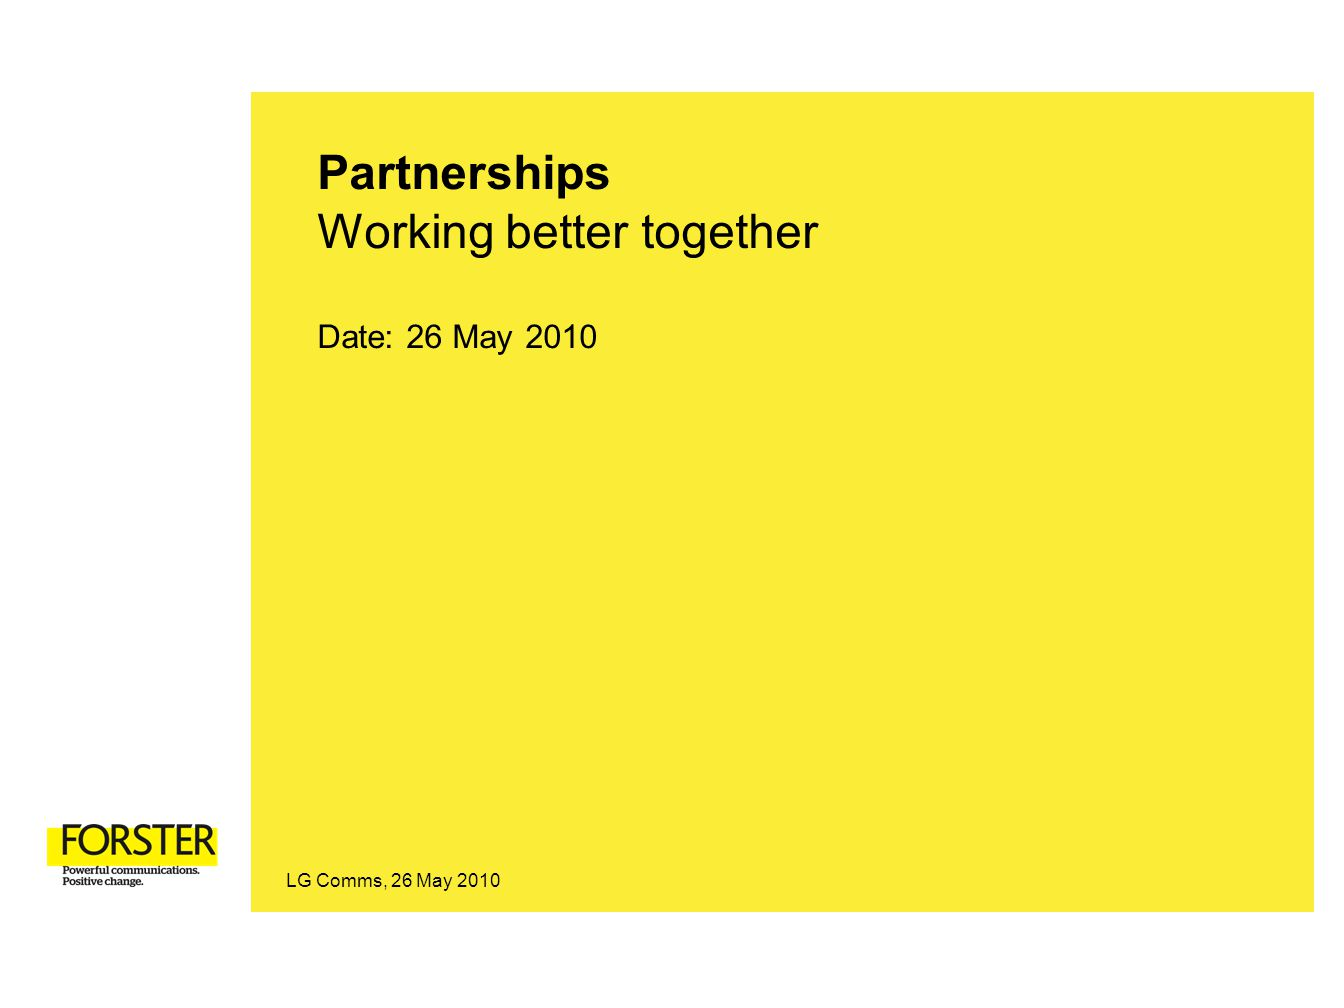 LG Comms, 26 May 2010 Partnerships Working better together Date: 26 May 2010